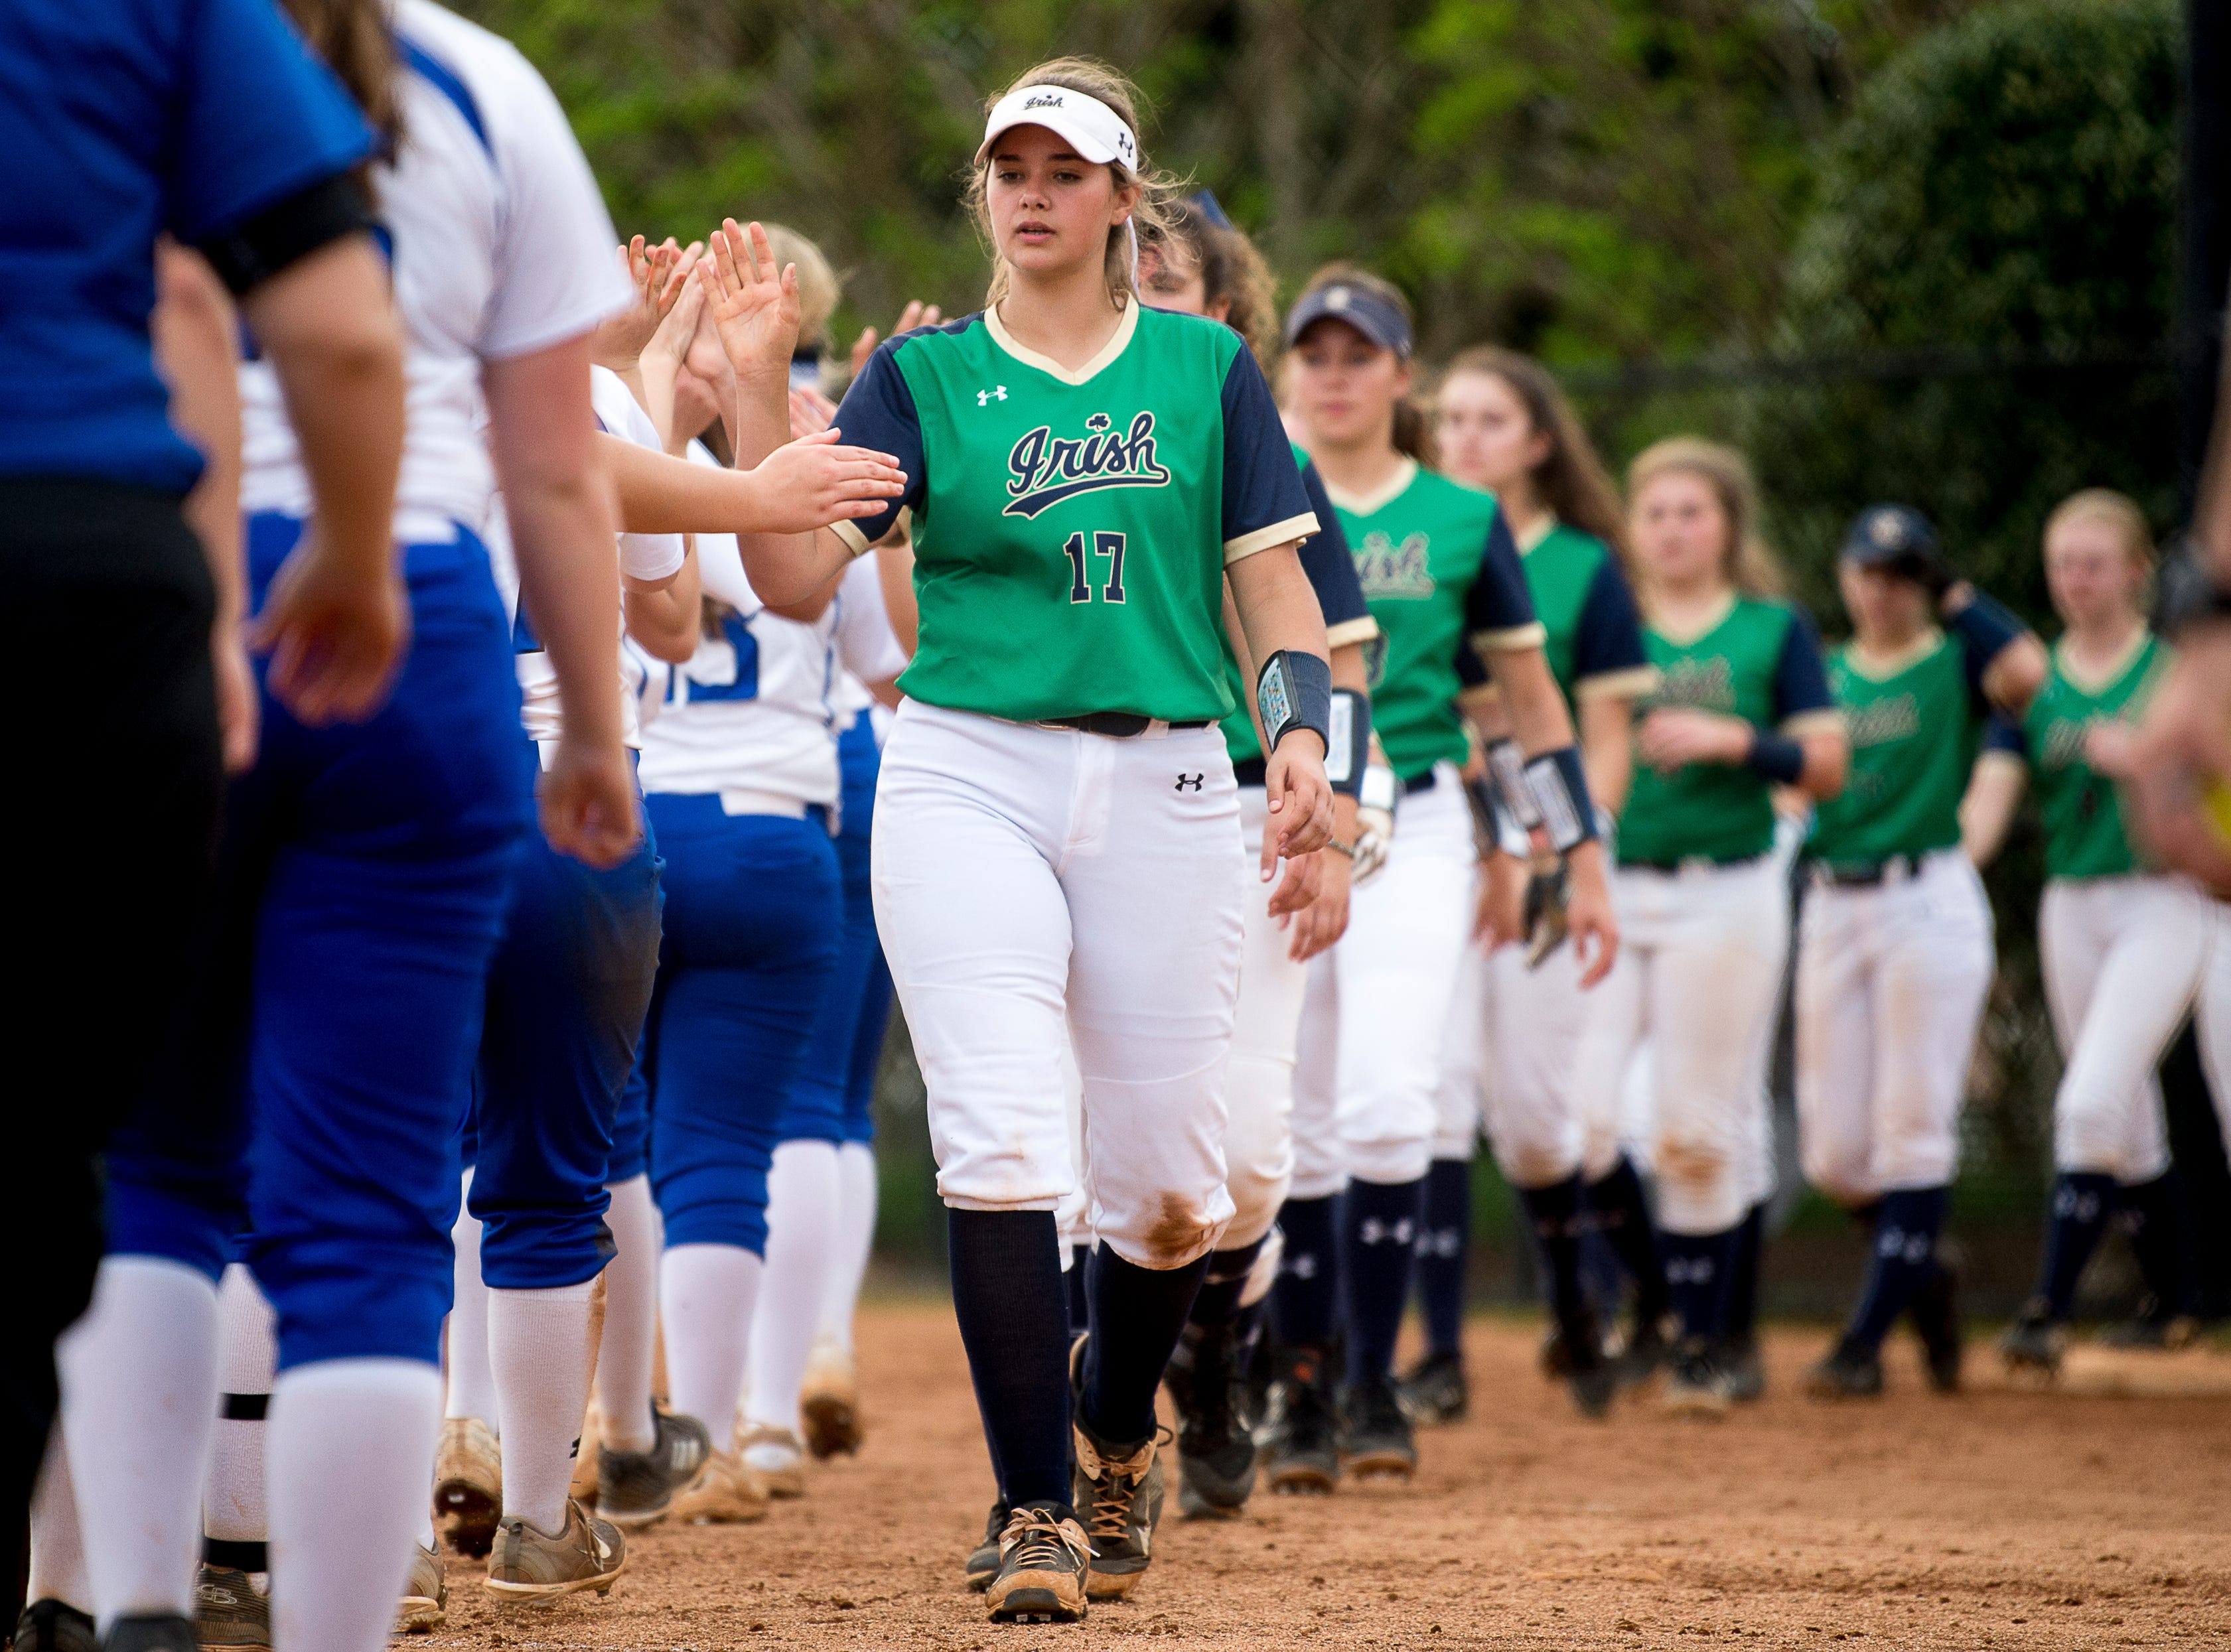 Players shake hands after a softball game between Catholic and Karns at Caswell Park in Knoxville, Tennessee on Friday, April 12, 2019.